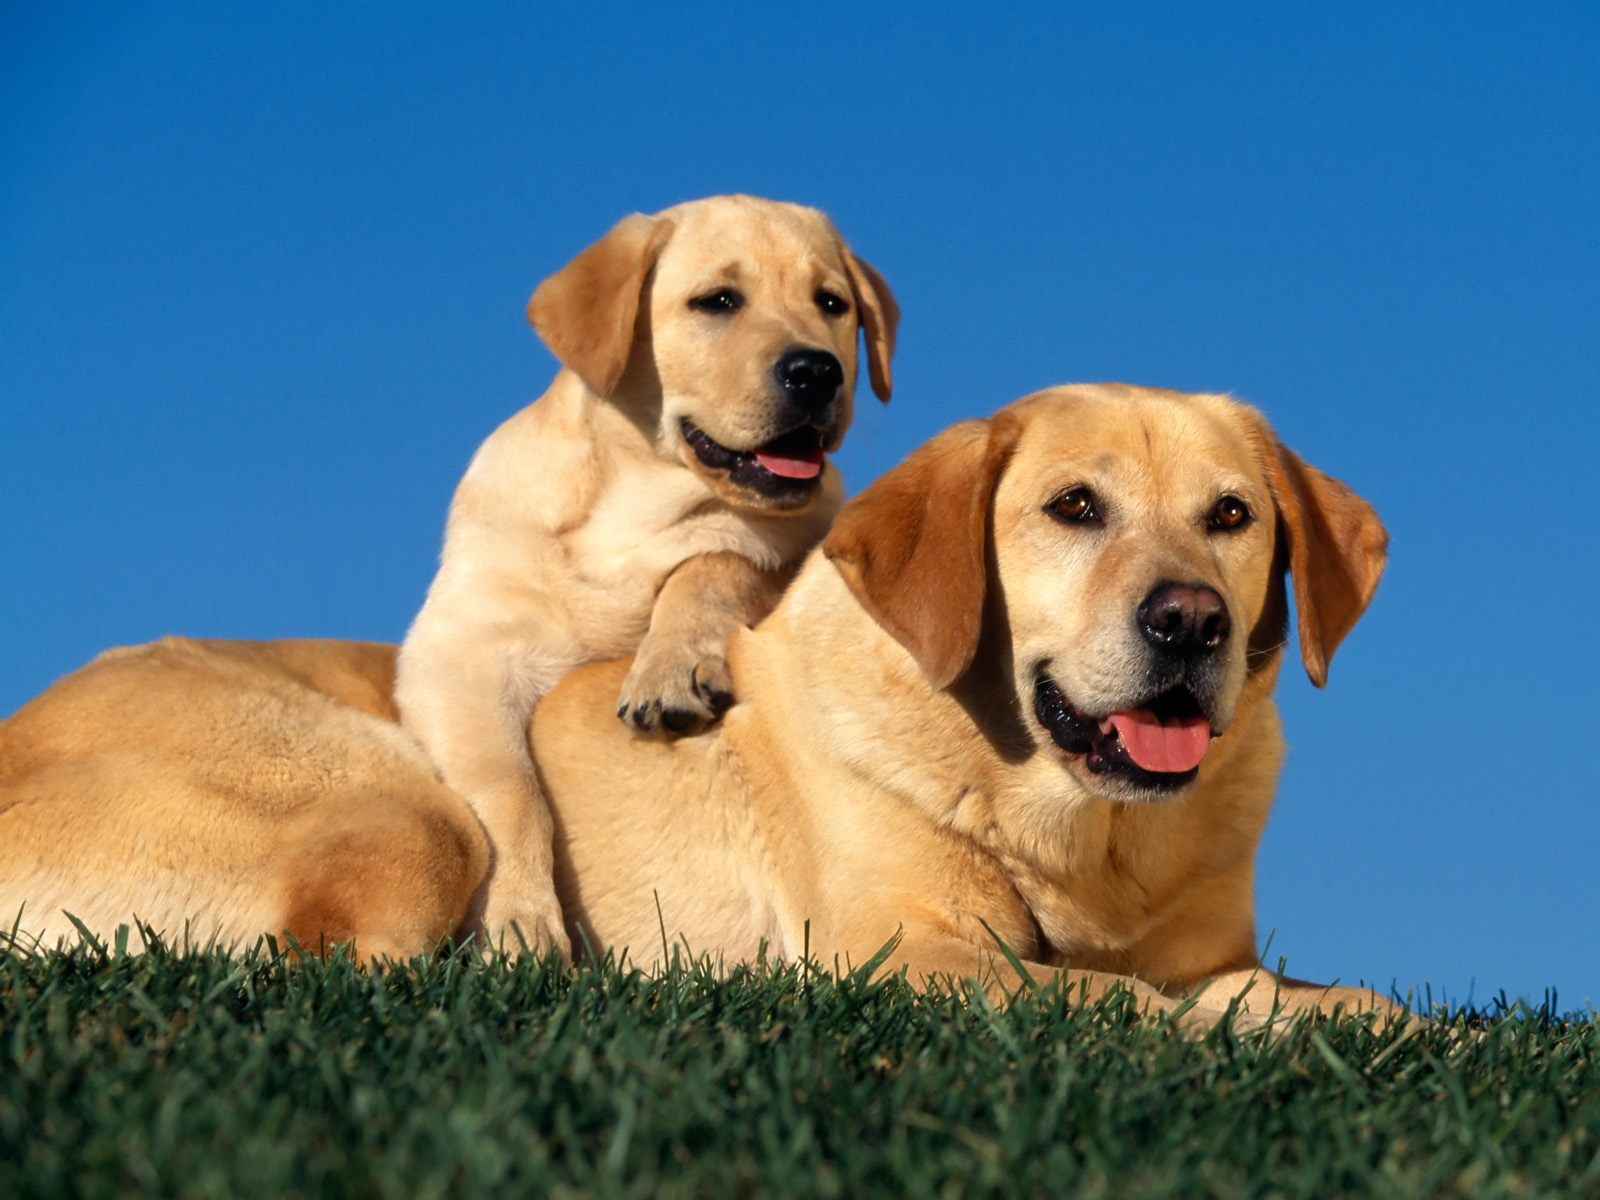 Yellow Labradors 286.77 Kb